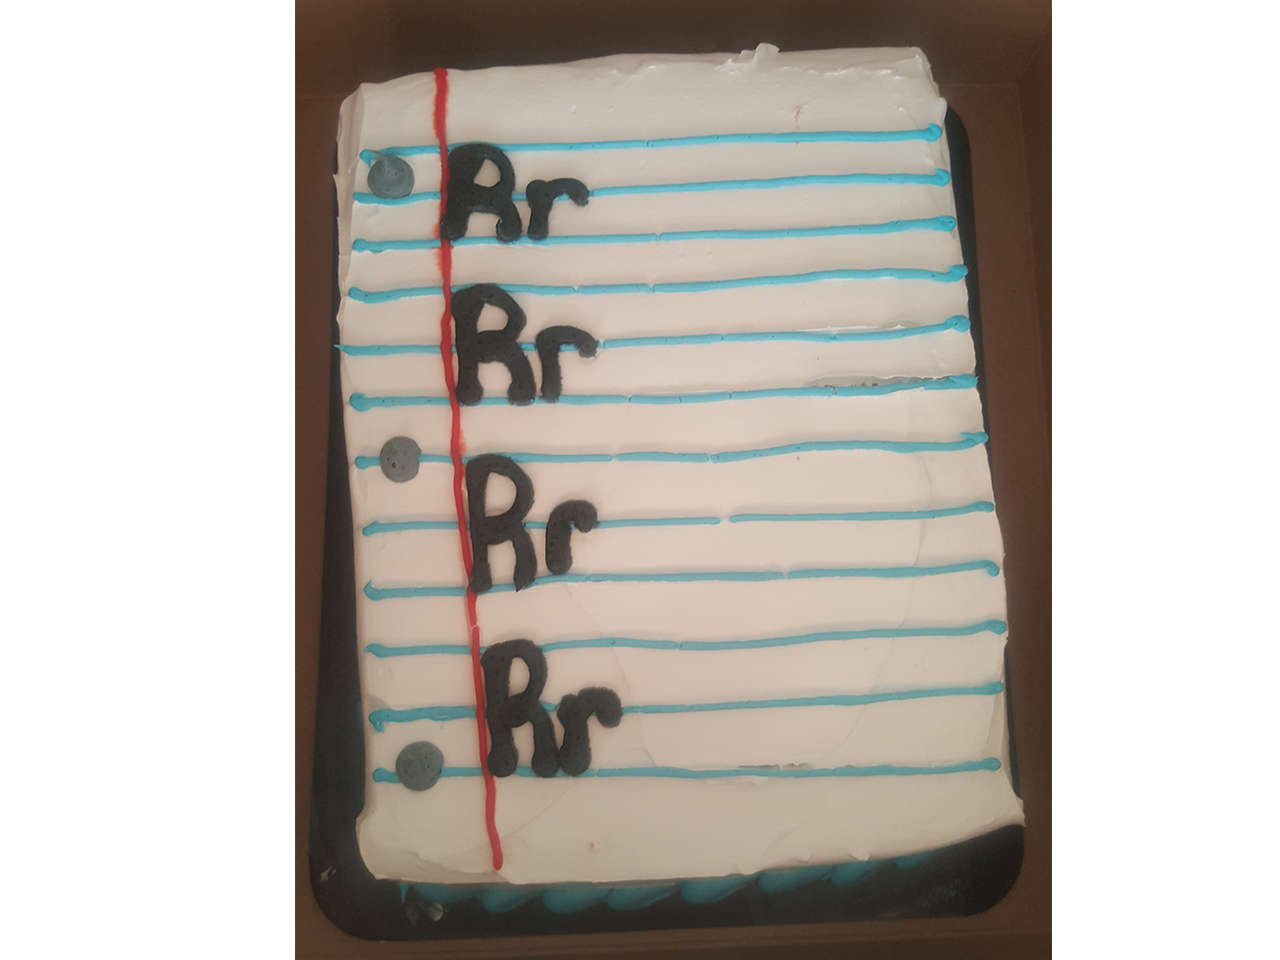 A picture of a cake with the letter R on it